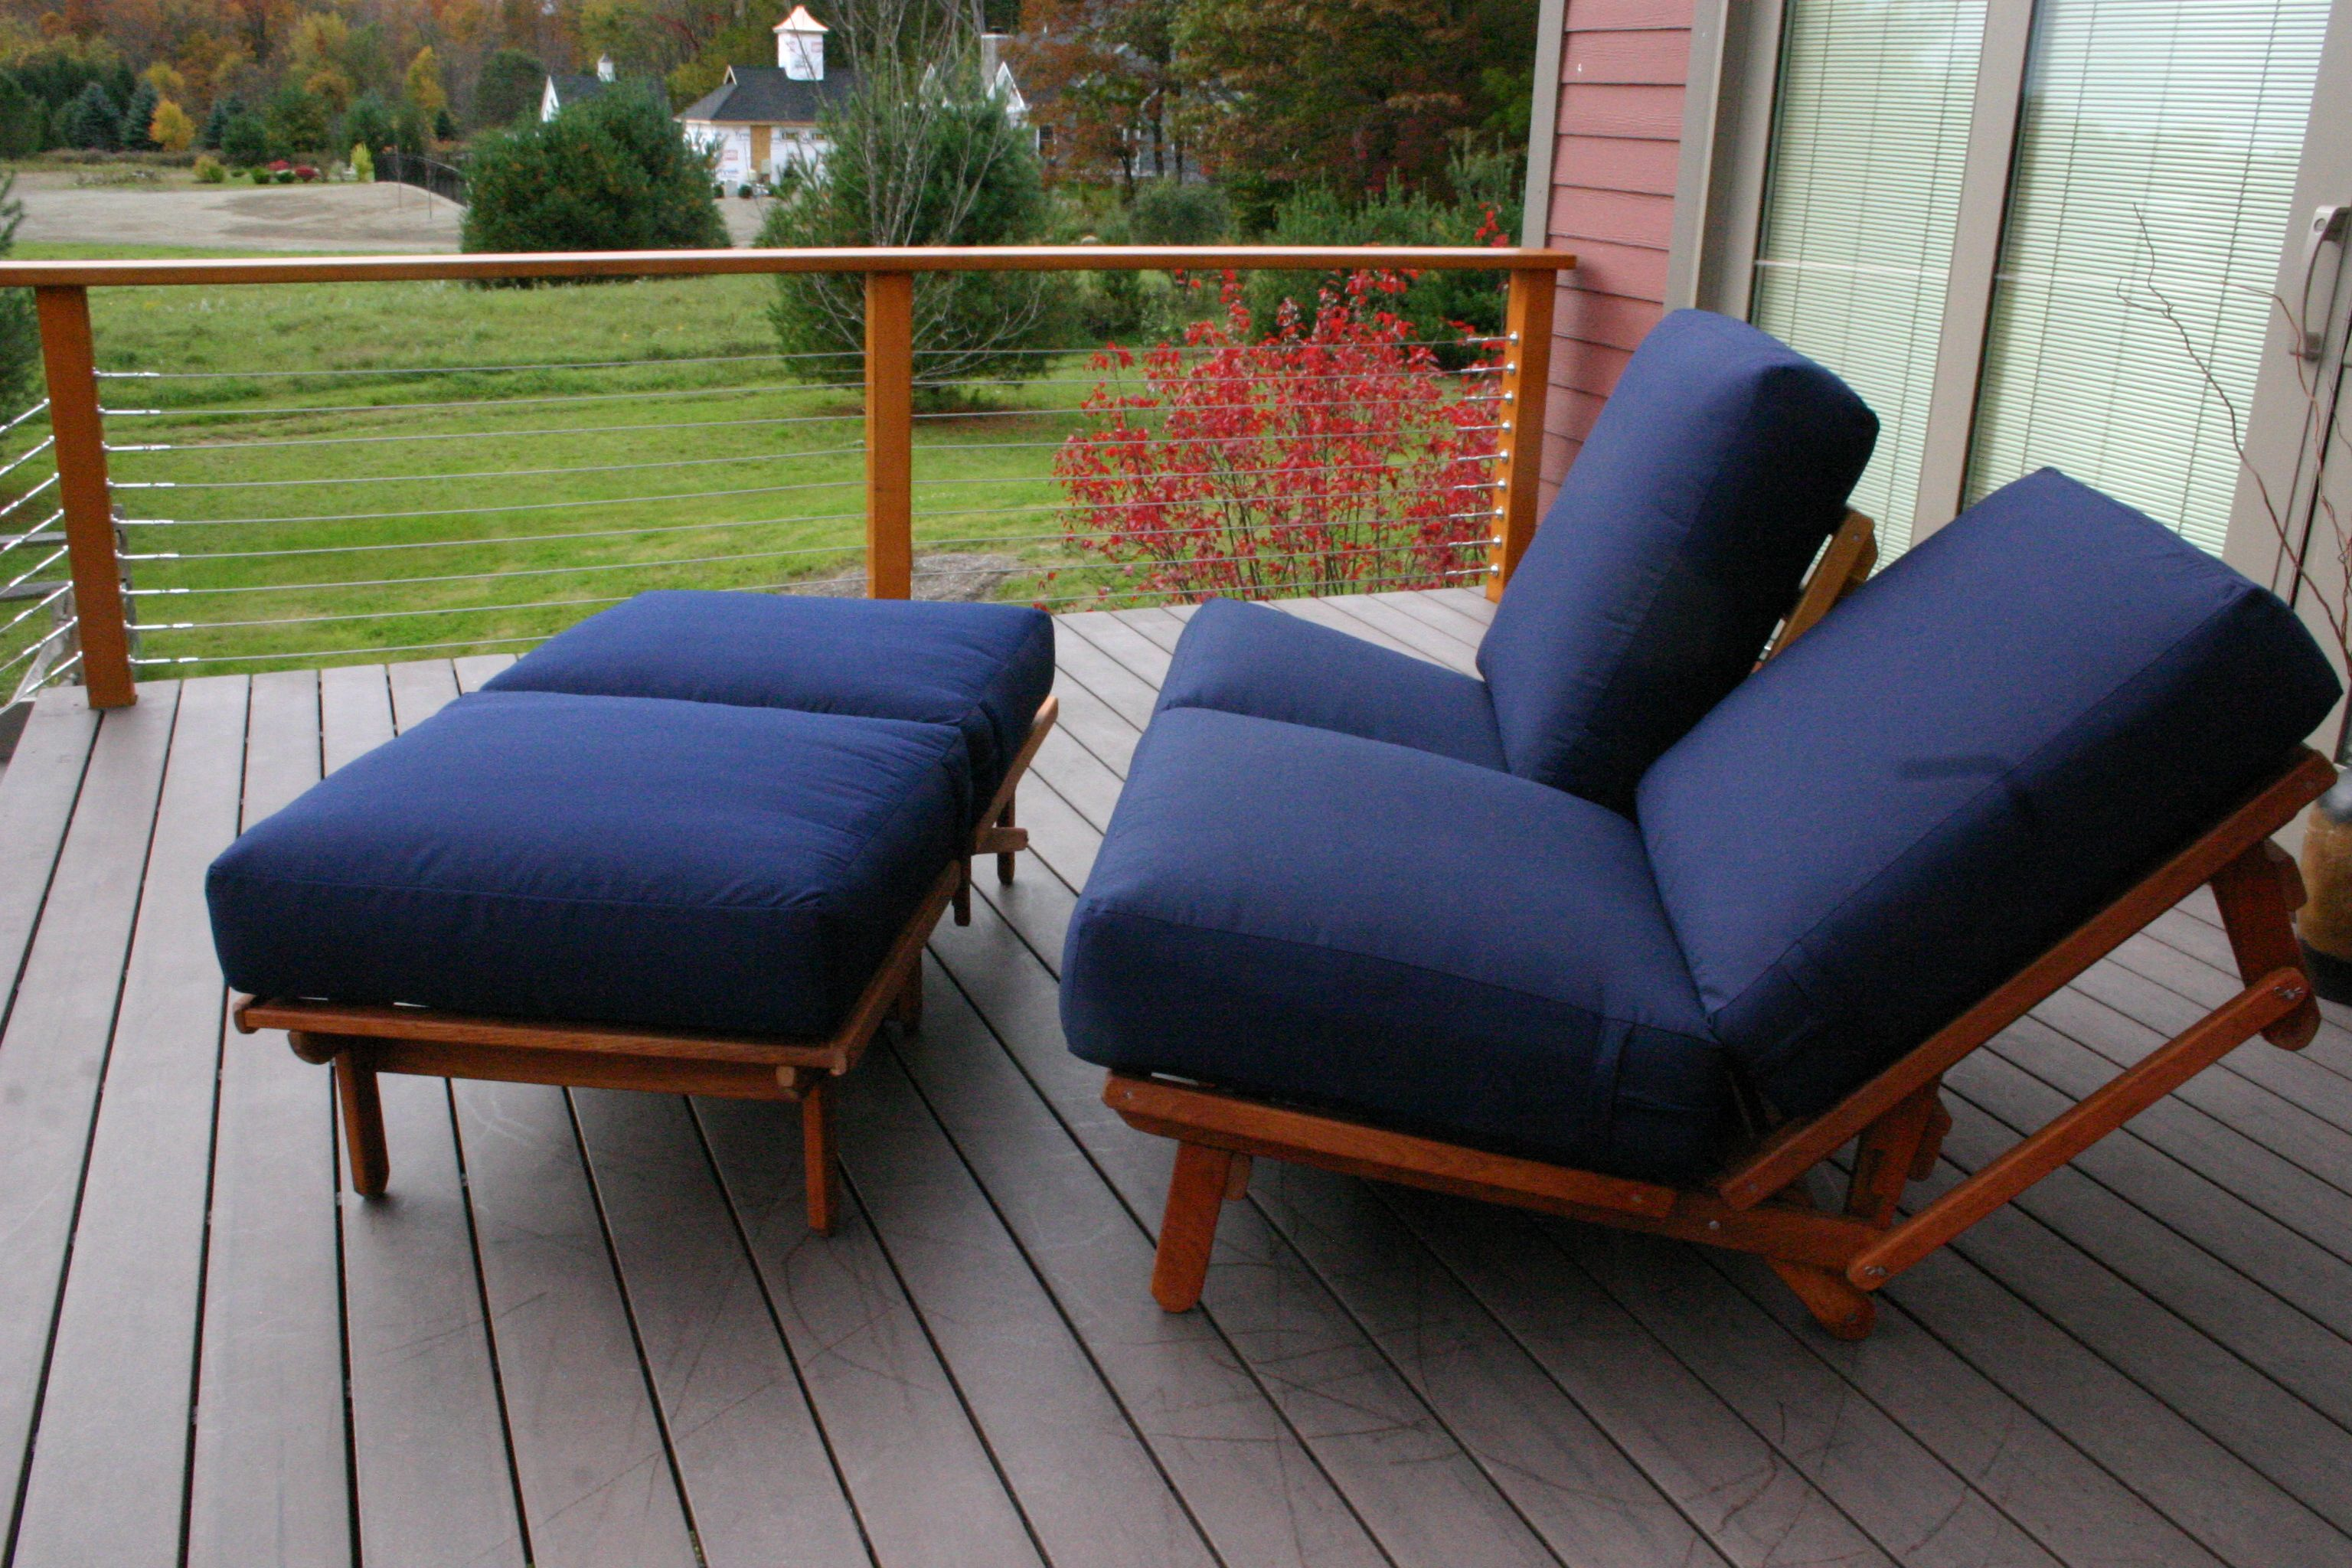 Terrific An Outdoor Loveseat And Ottoman That Is Made Up Of 3 Armless Creativecarmelina Interior Chair Design Creativecarmelinacom